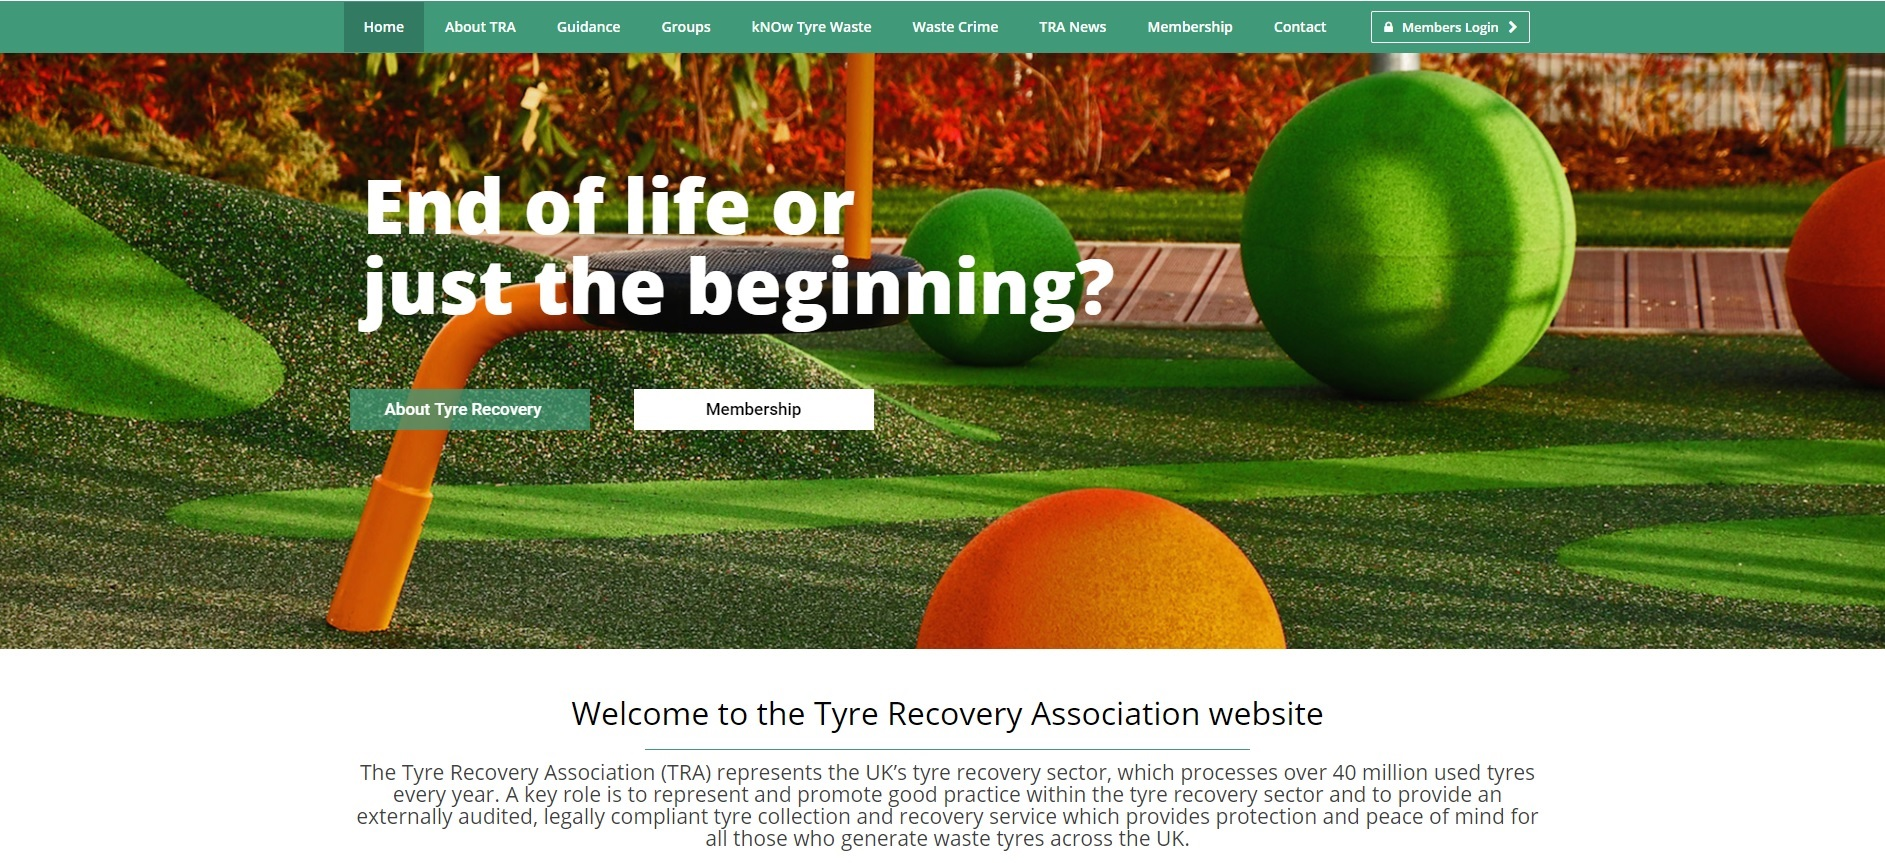 Tyre Recovery Association Launches New Website As Guidance To The Tyre Recovery Process